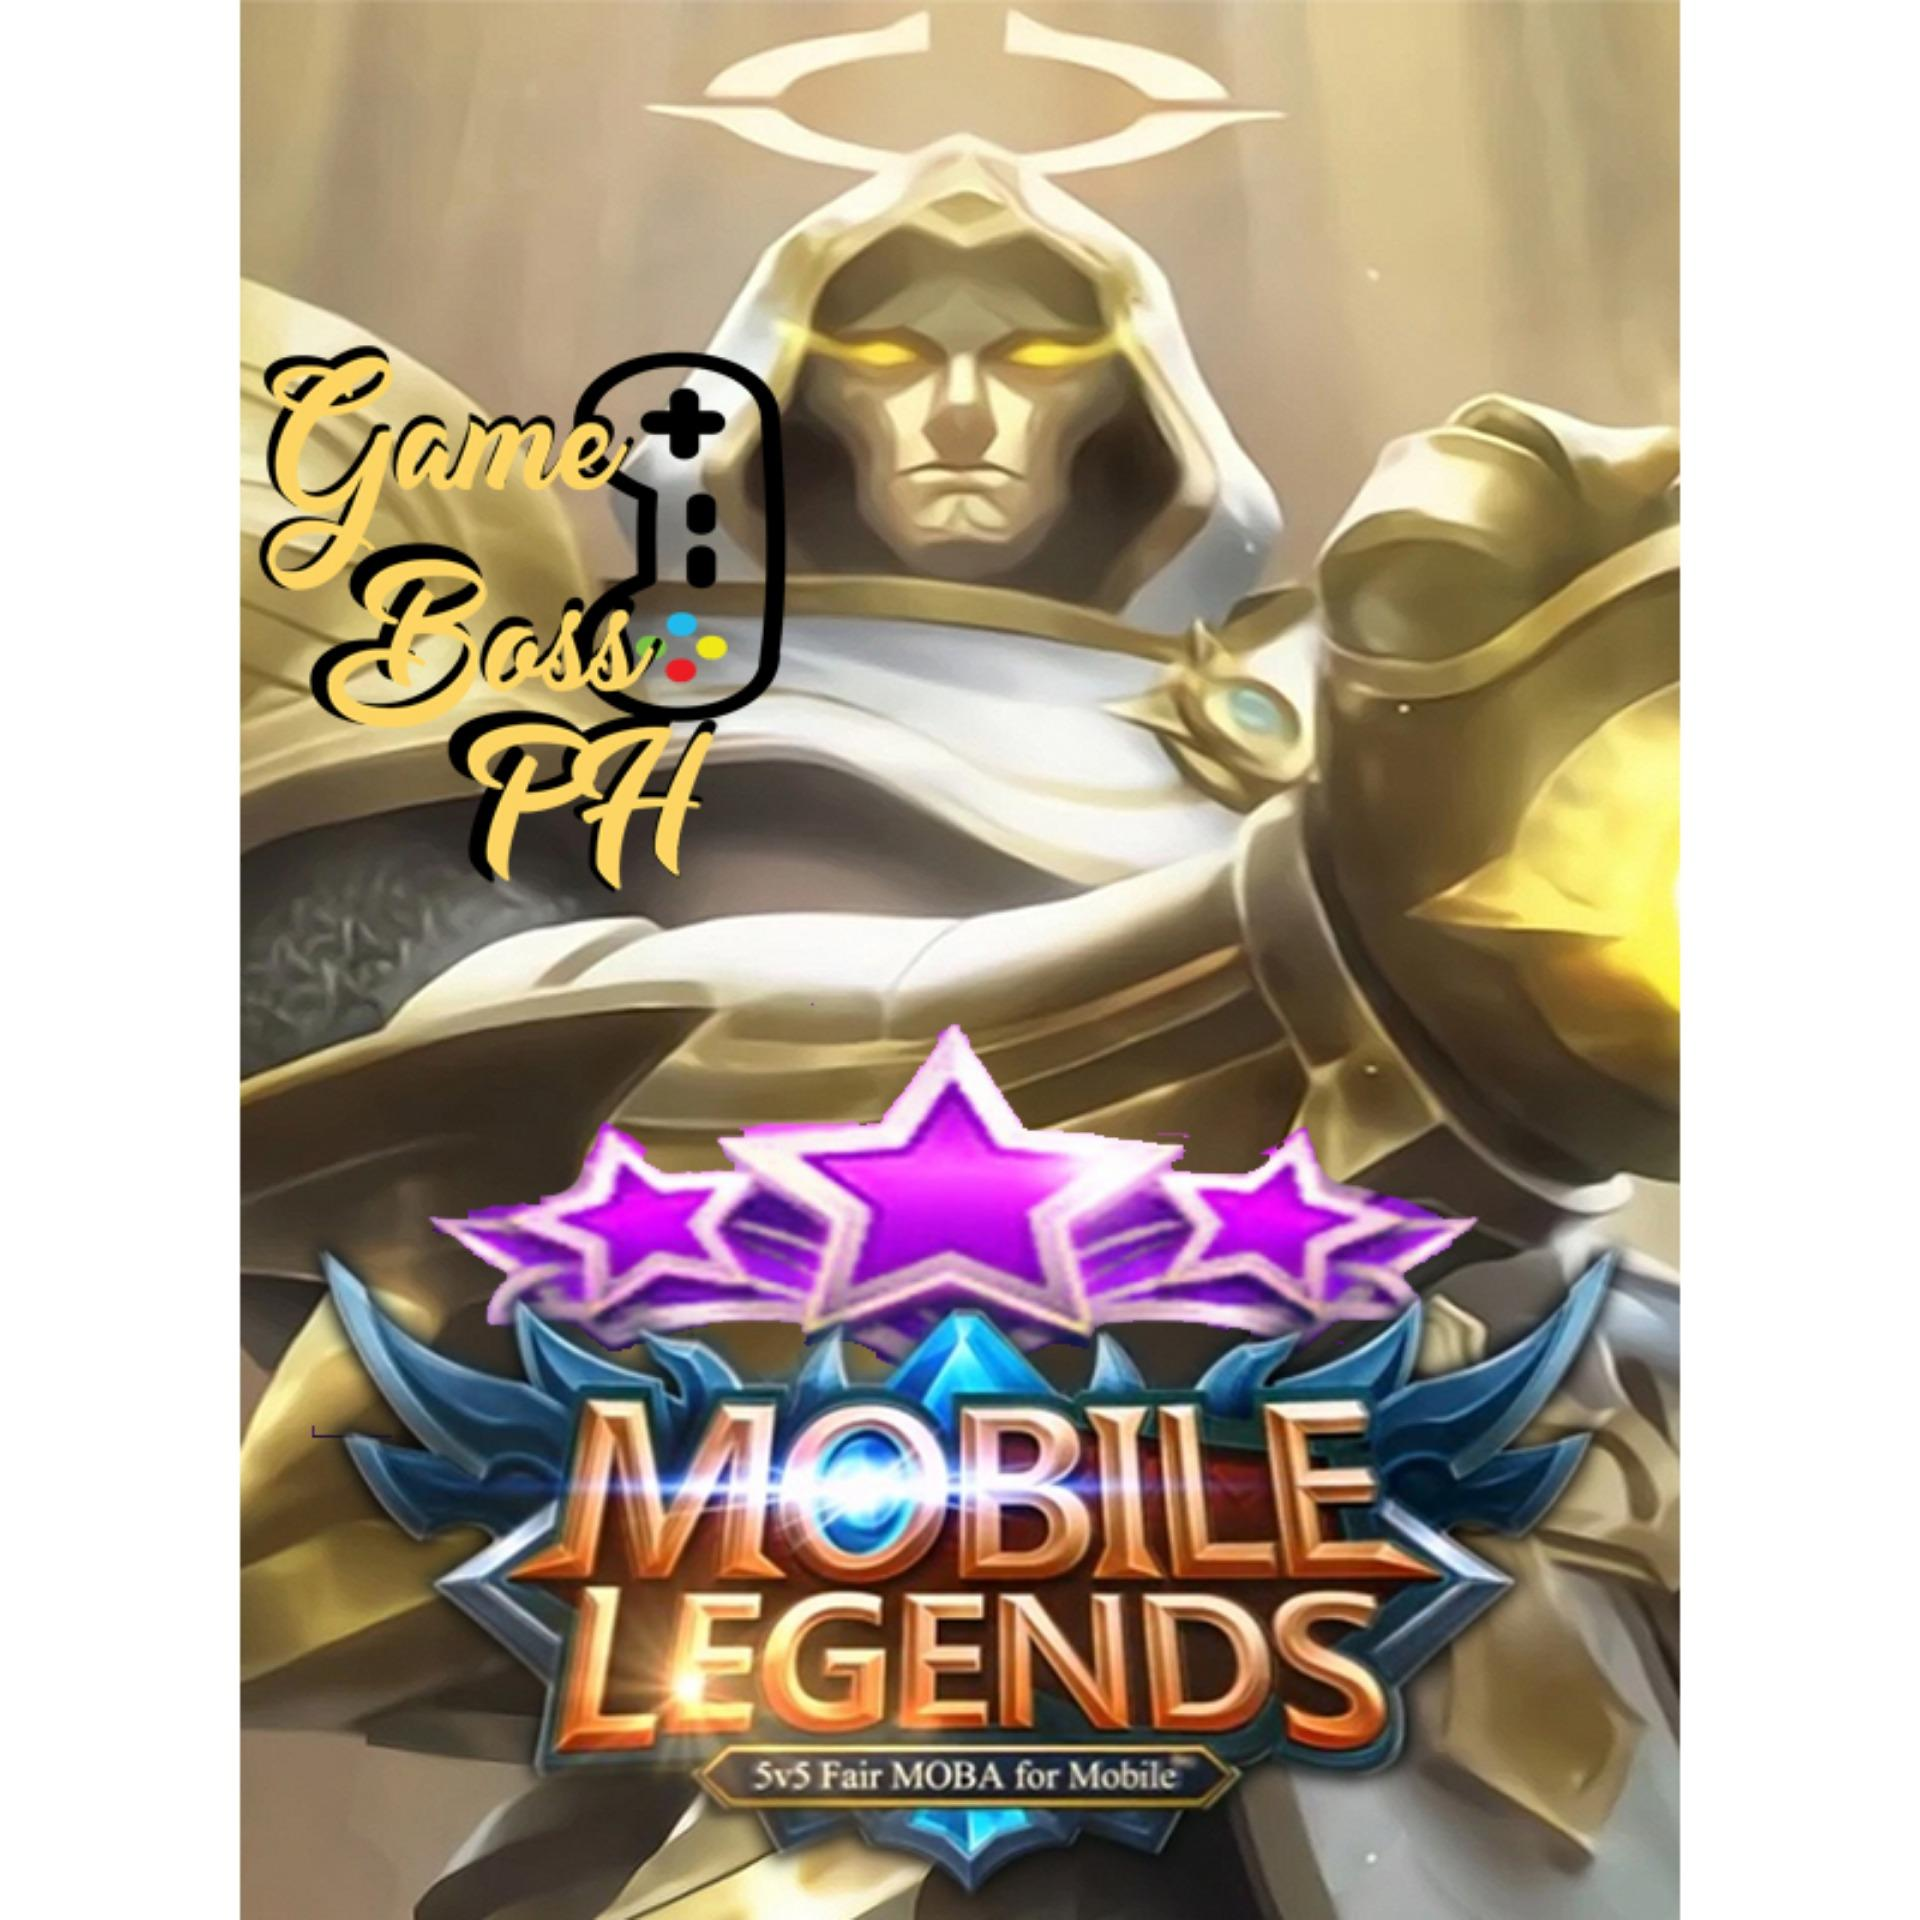 [TOP RATED] Mobile Legends Starlight ML SL - GAMEBOSS